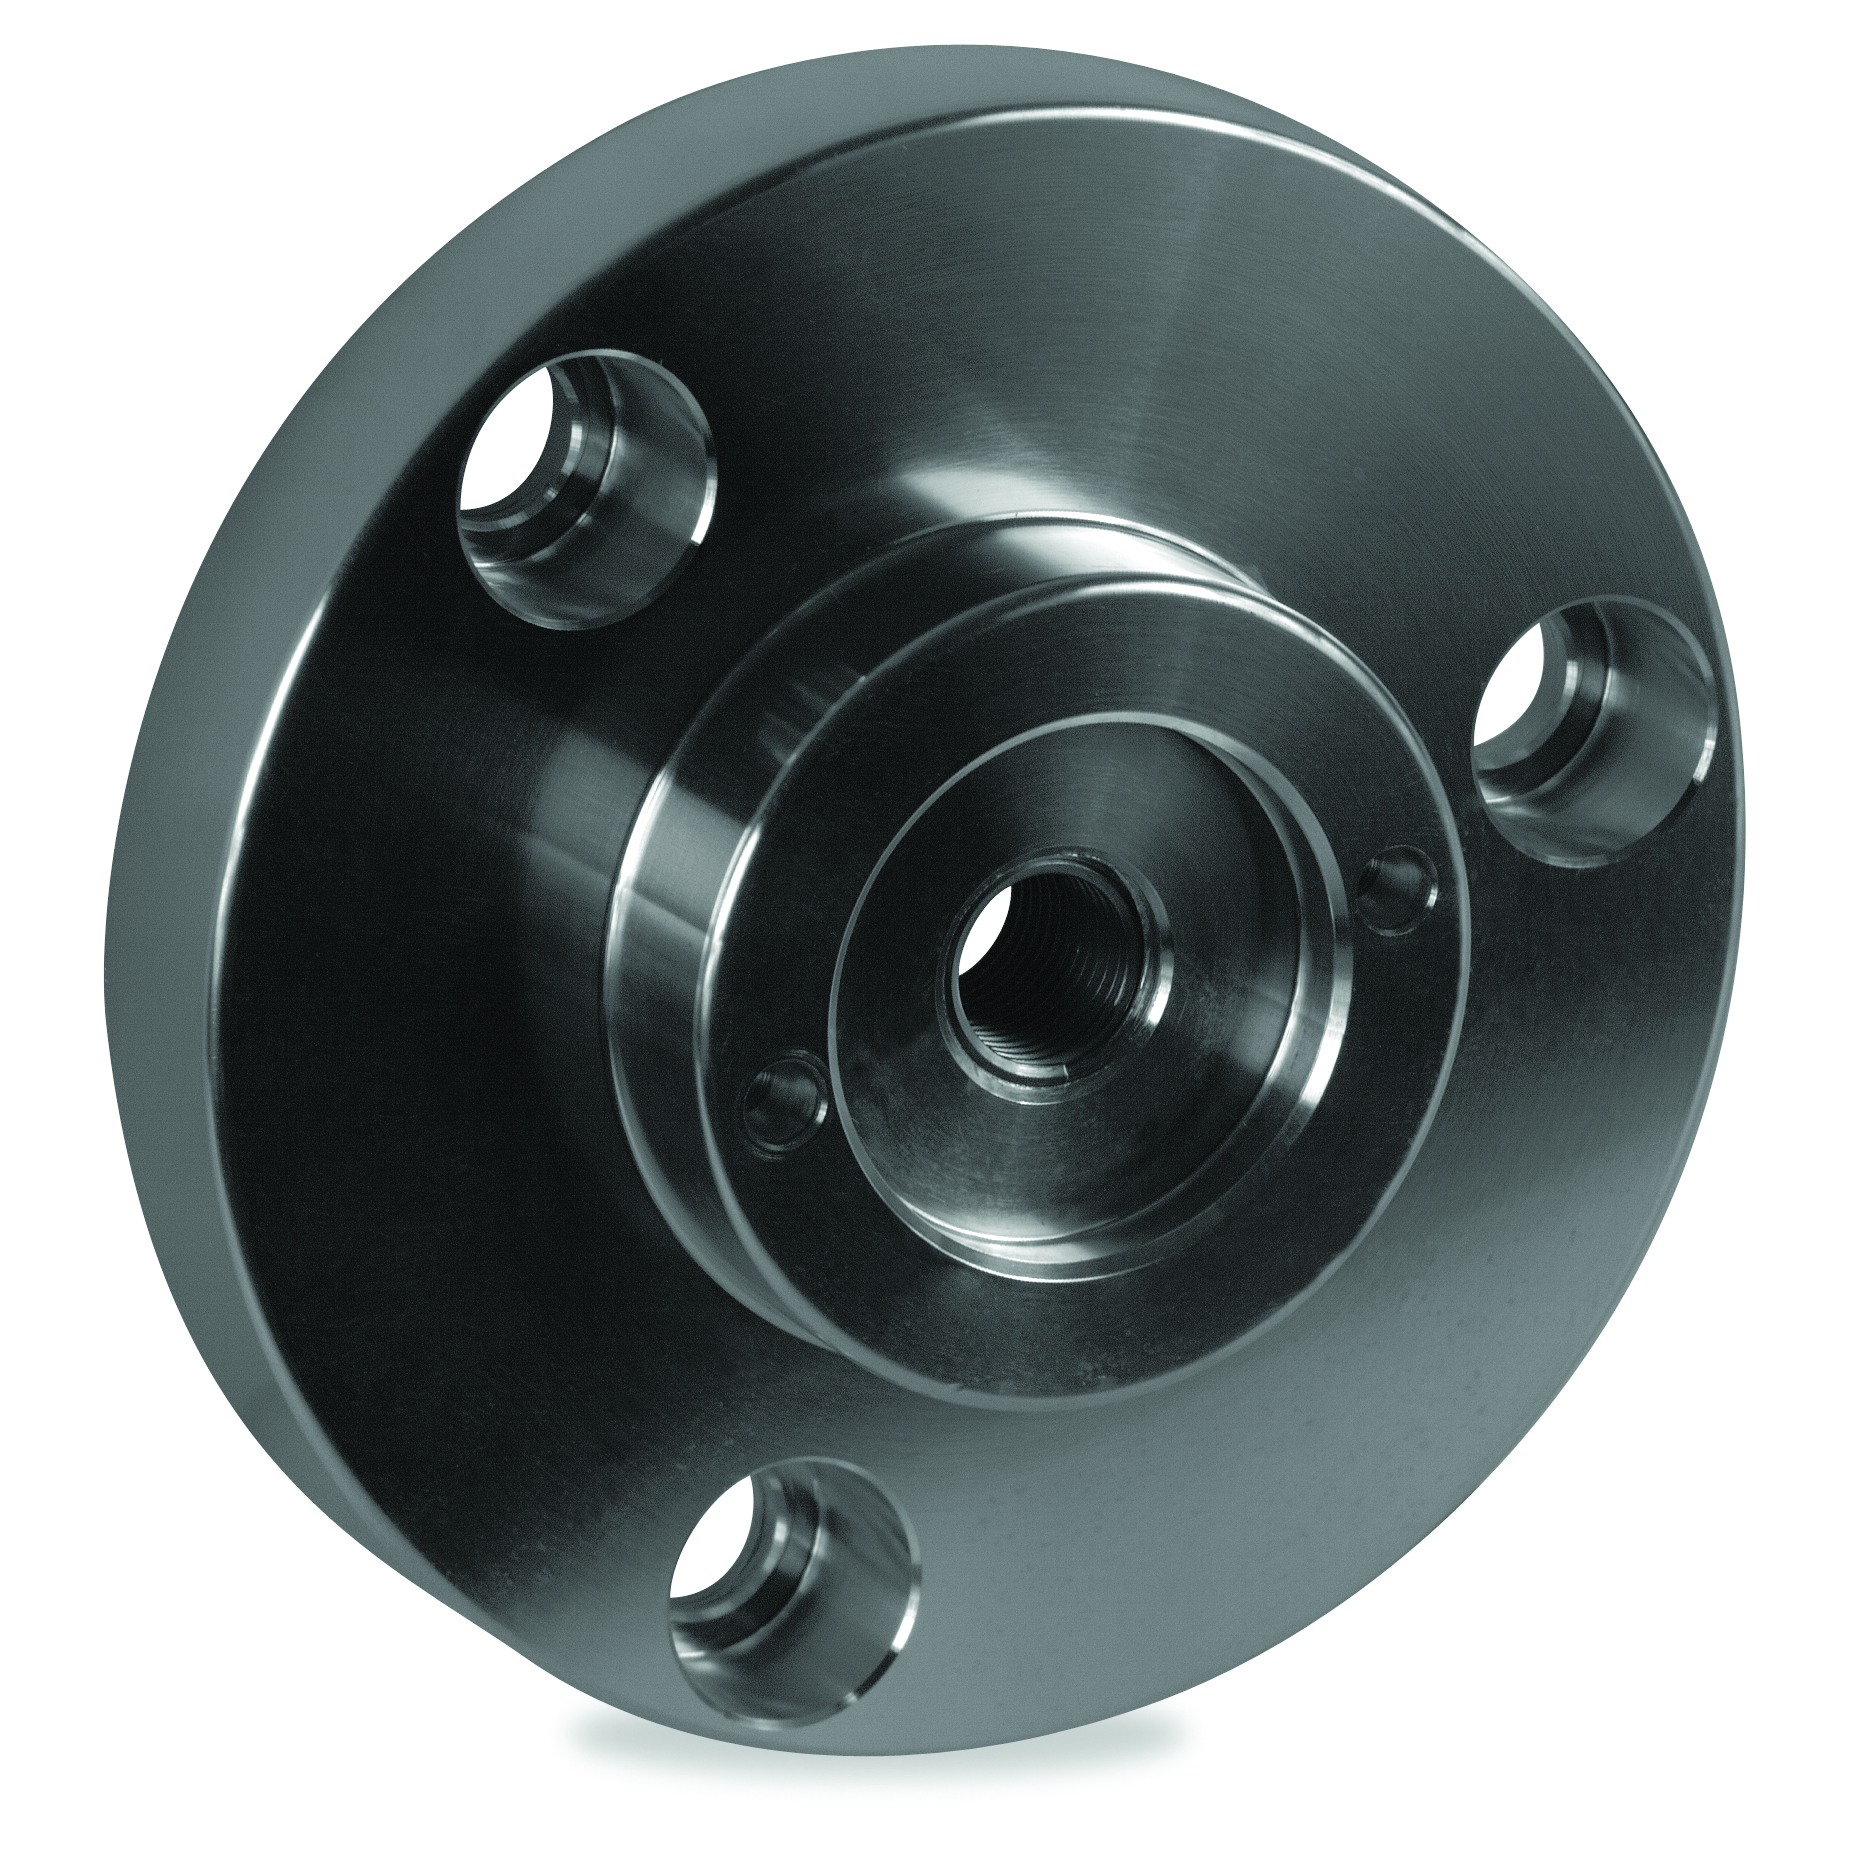 CV Products 55126 SBC 3 Bolt Crank HUB Twin PIN Drive BBC